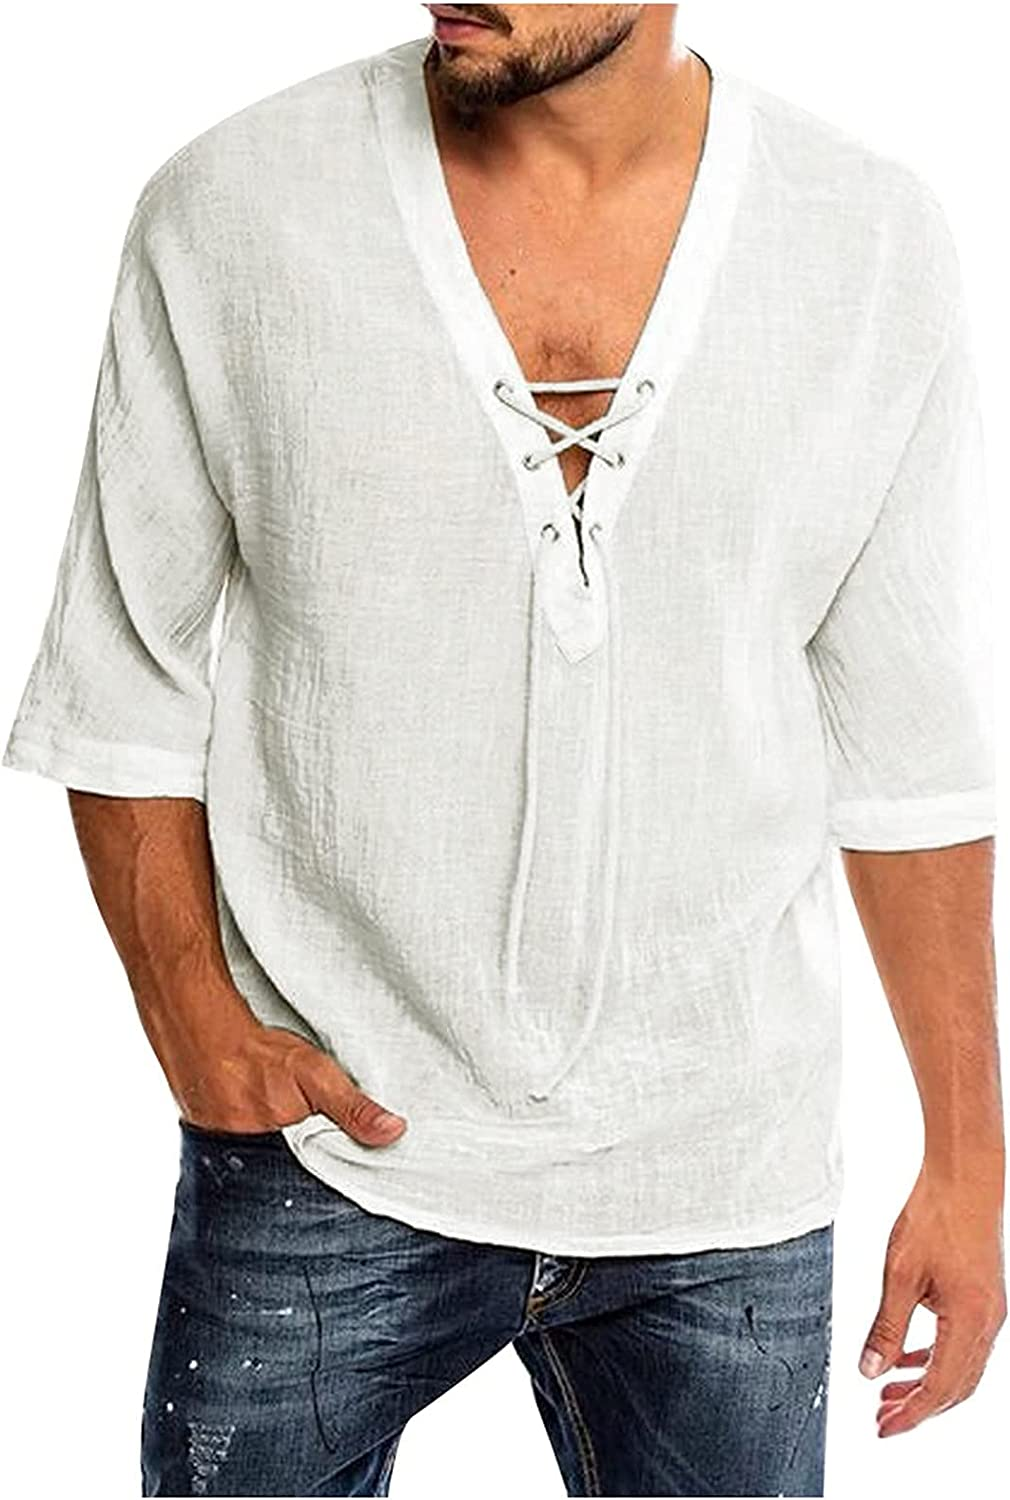 BEUU Cotton Linen Casual Shirts for Mens, Summer Men's Drawstring Lace-up Tie V Neck Henley Half Sleeve Beach Fall Tops